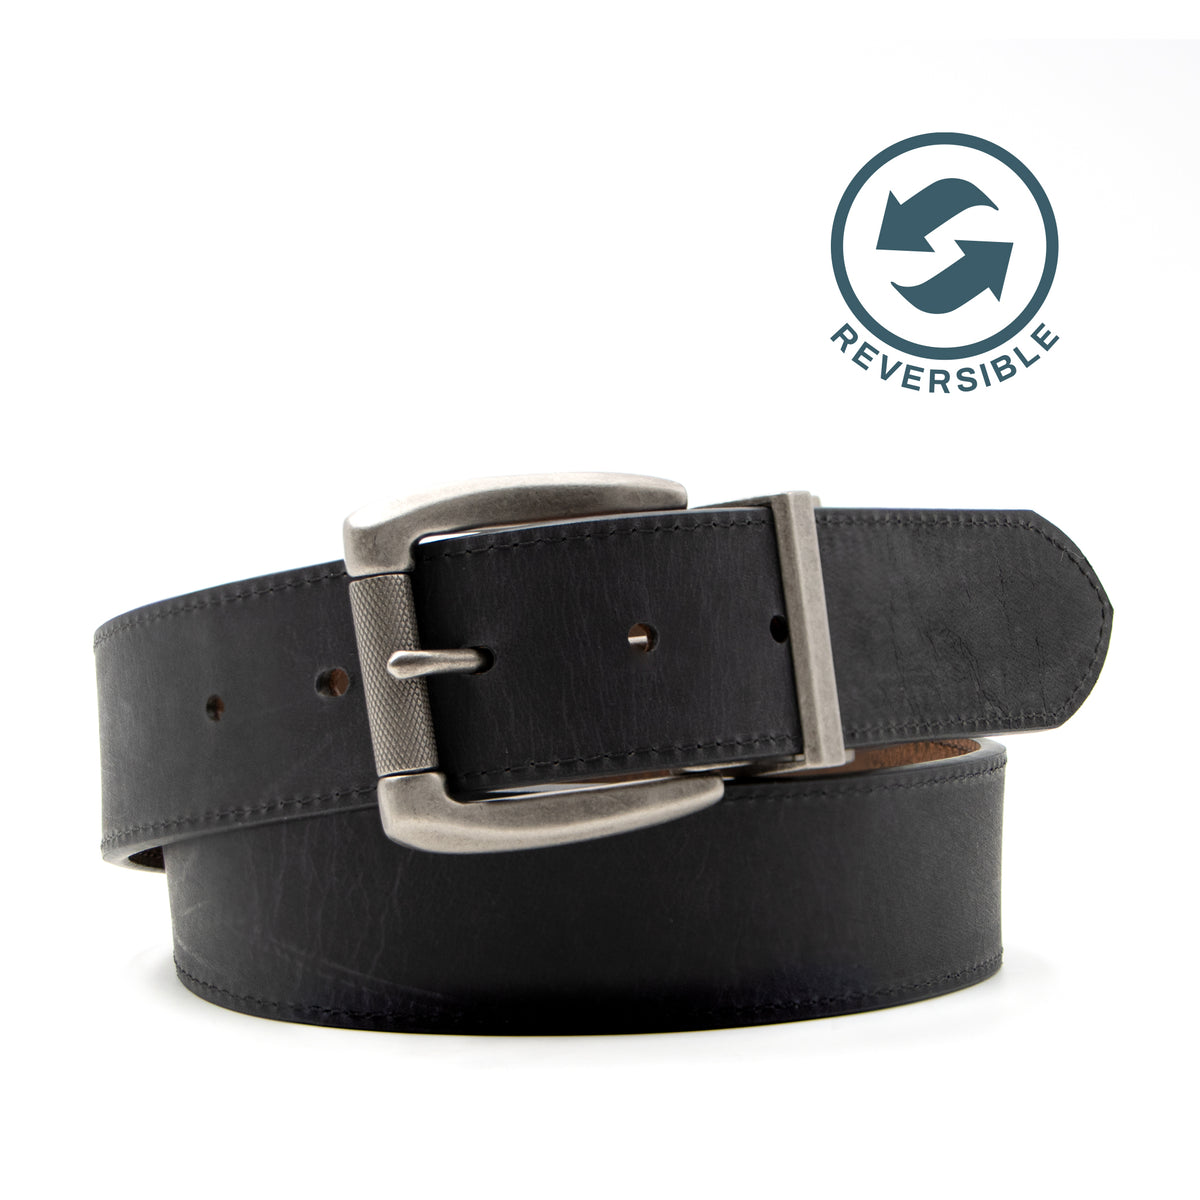 "1 1/2"" Rugged Reversible Belt"